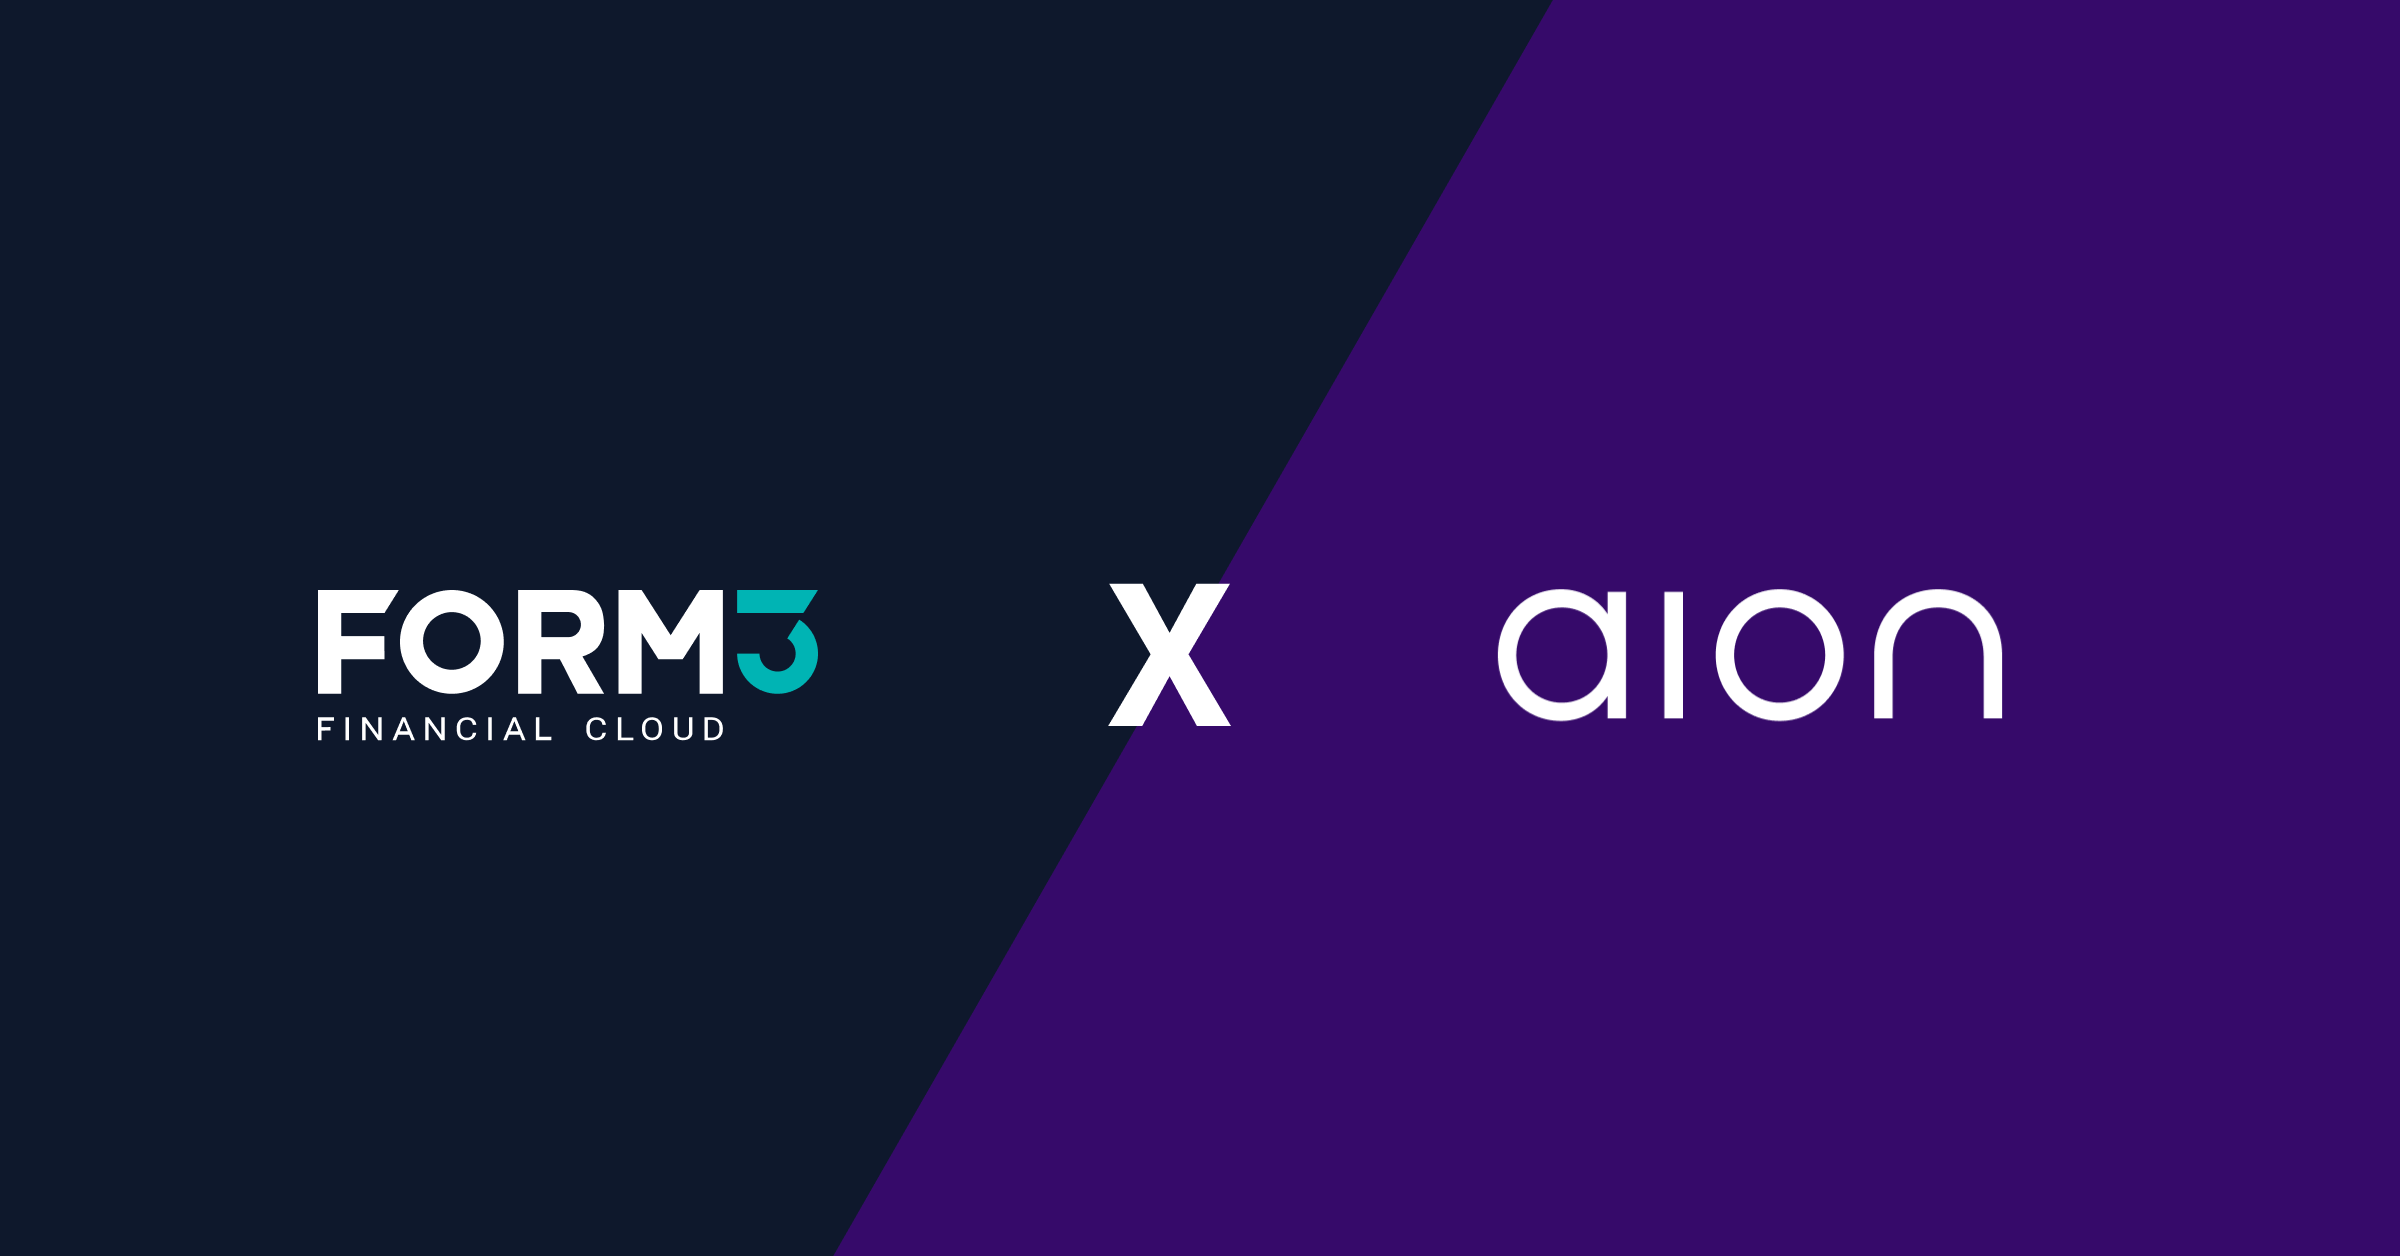 Aion Bank Partners With Form3 to Disrupt Banking and Change the Way We Think About Finances